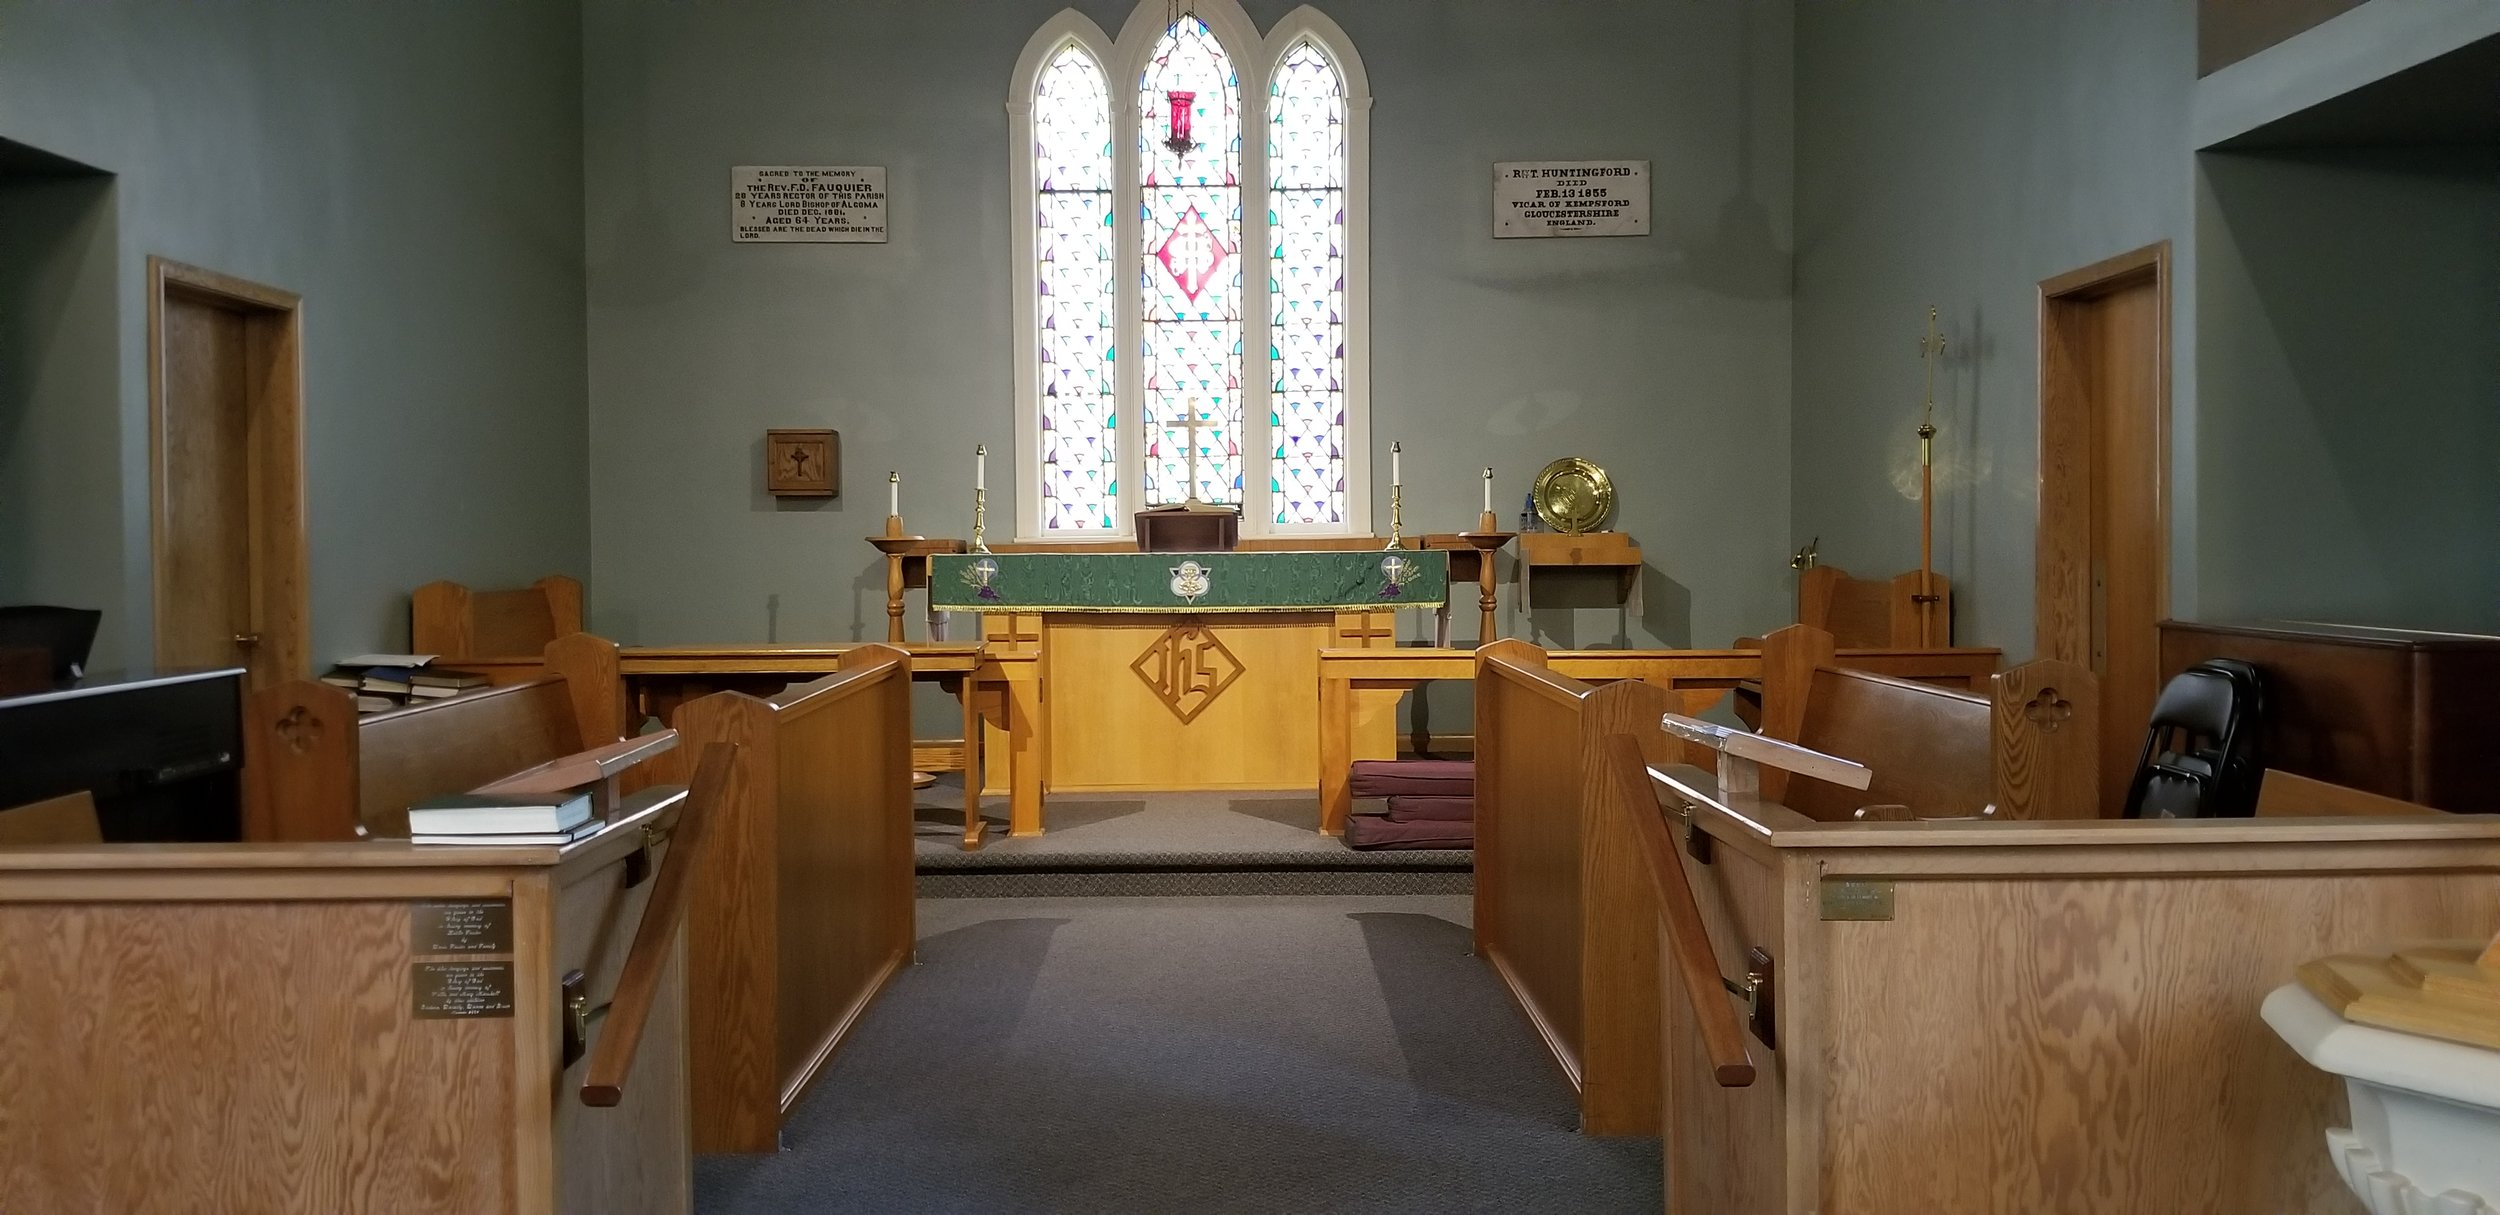 The main sanctuary.